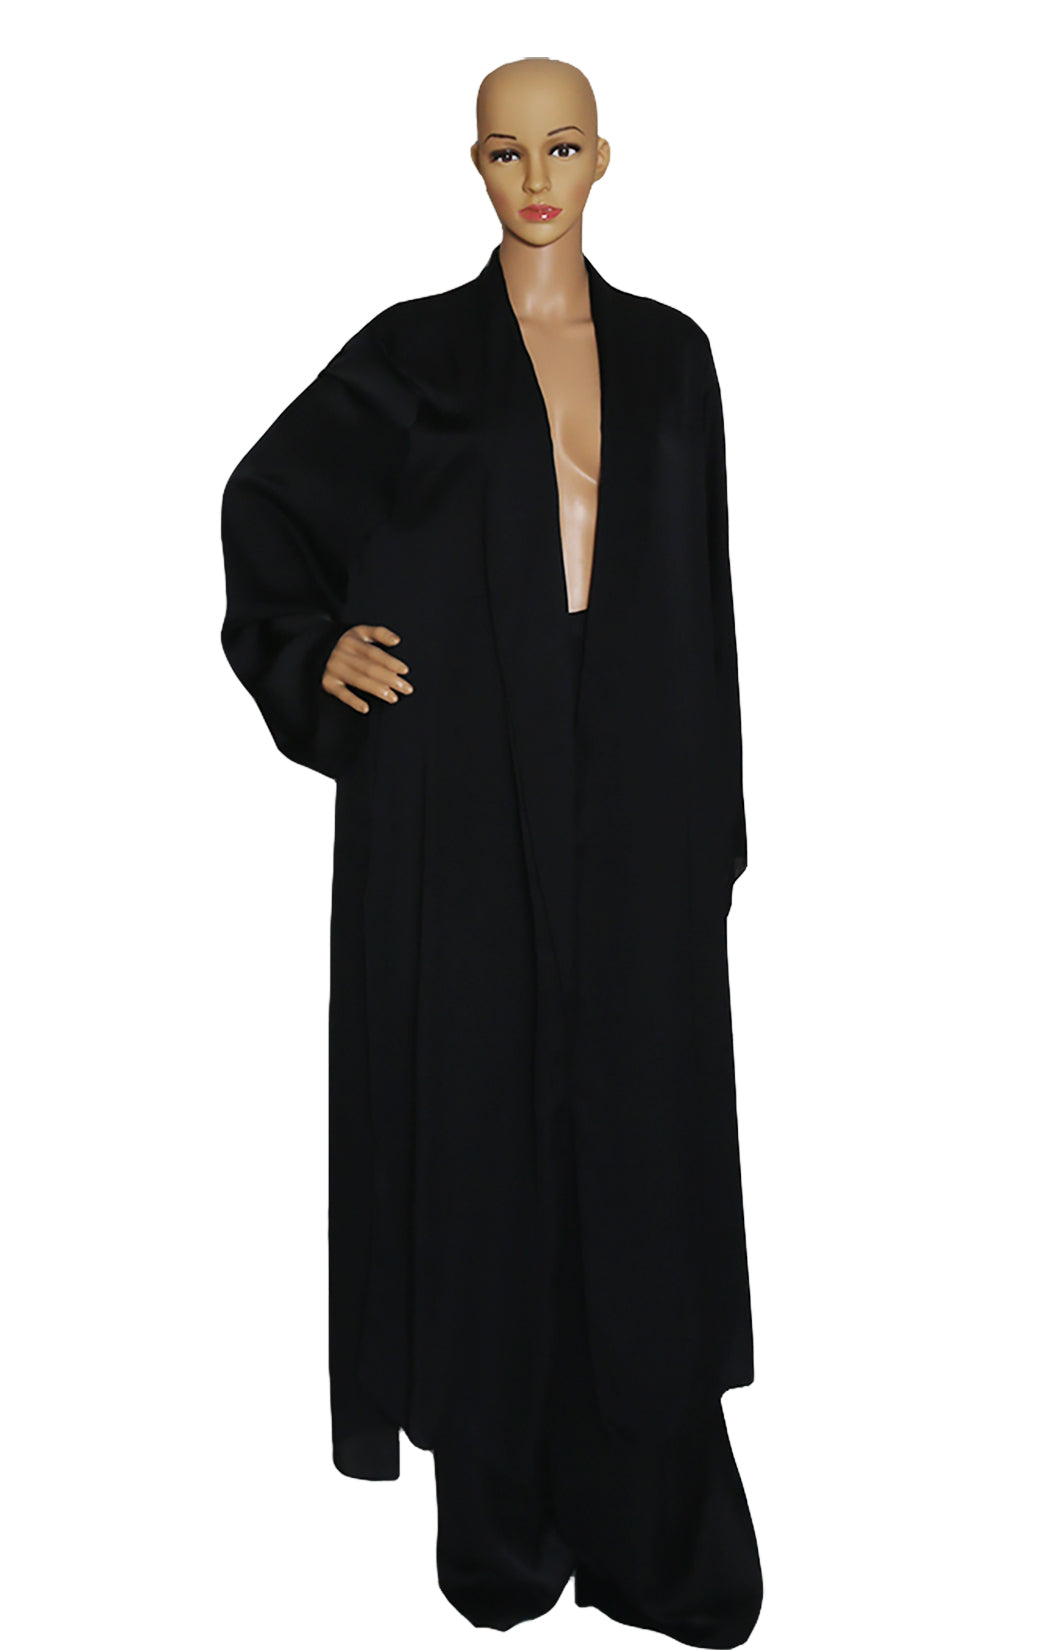 Front view of JUAN CARLOS ORLANDO  Black Coat and Pant  Coat Size: US 6 Pant Size: US 10